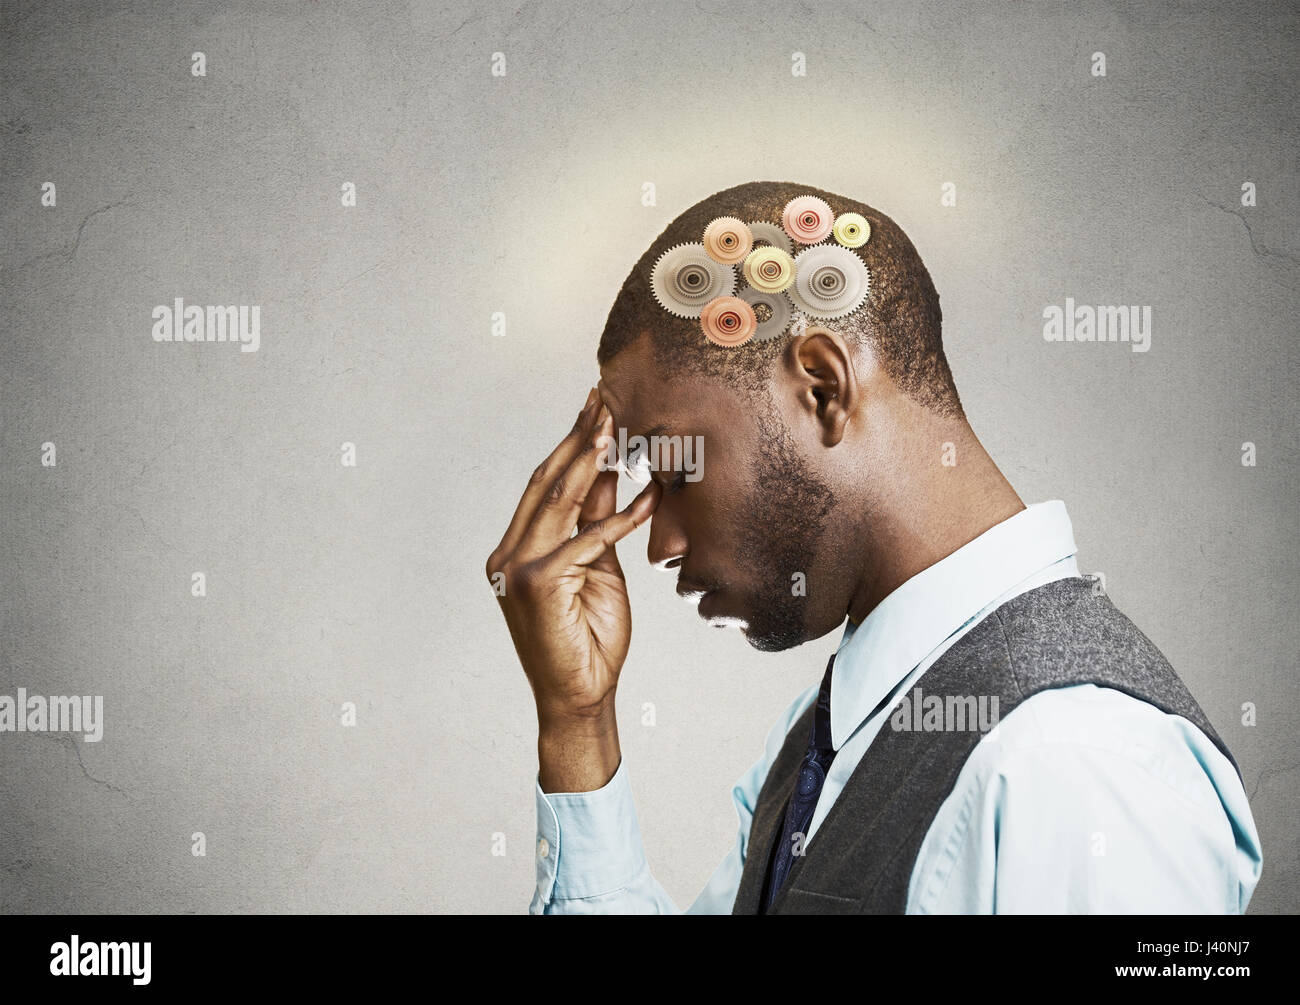 Closeup side view profile headshot thoughtful man, young guy thinking hard, gear mechanism, illustration over head - Stock Image